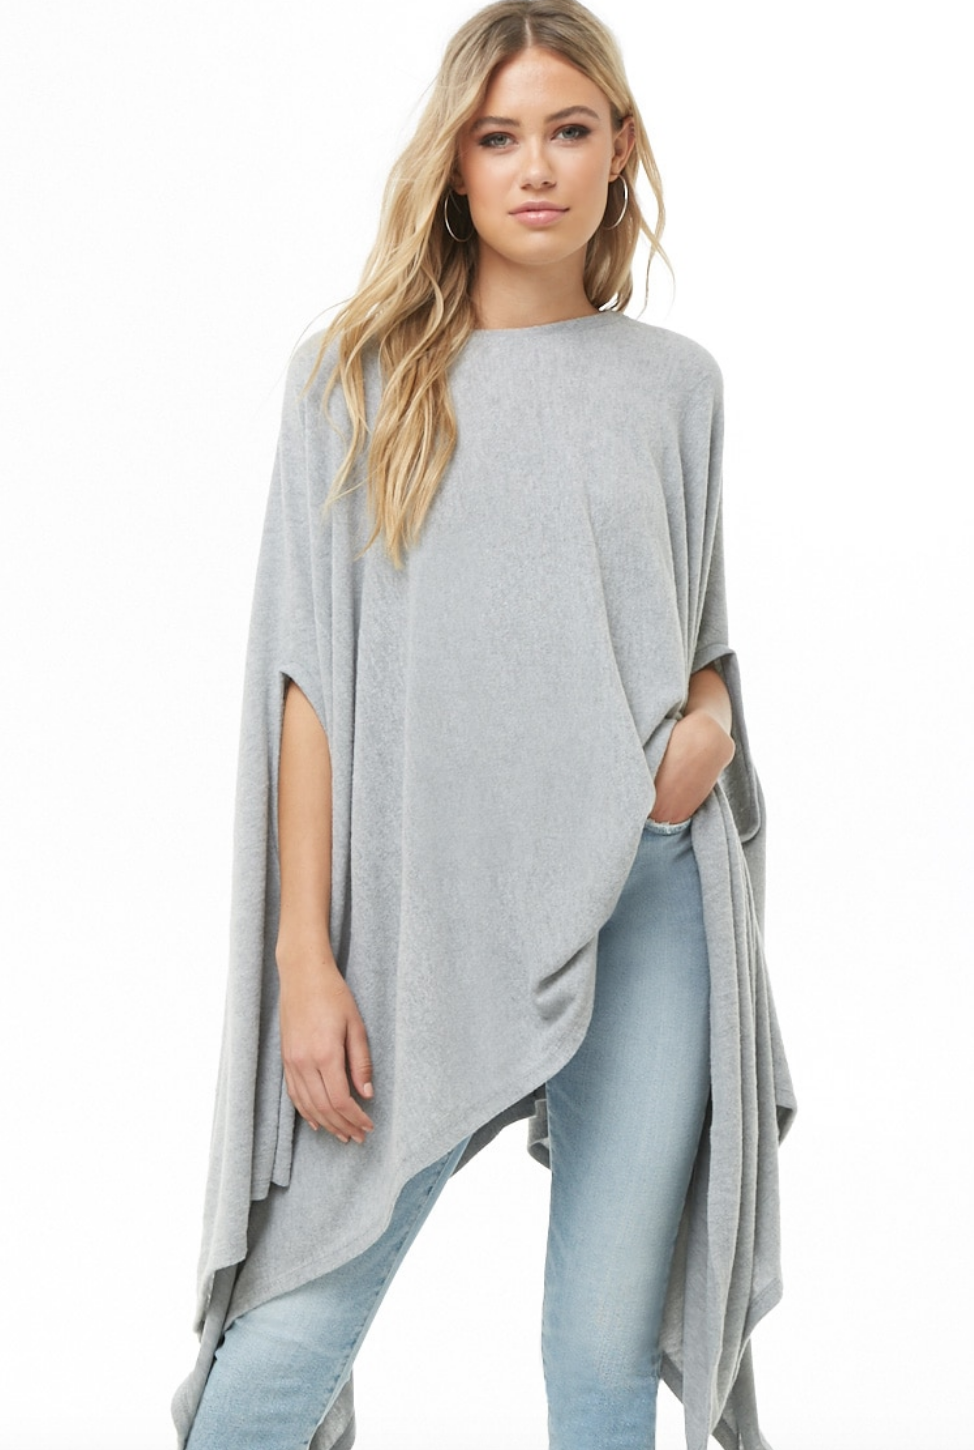 Forever21 - $15 on sale (black & dark grey also)